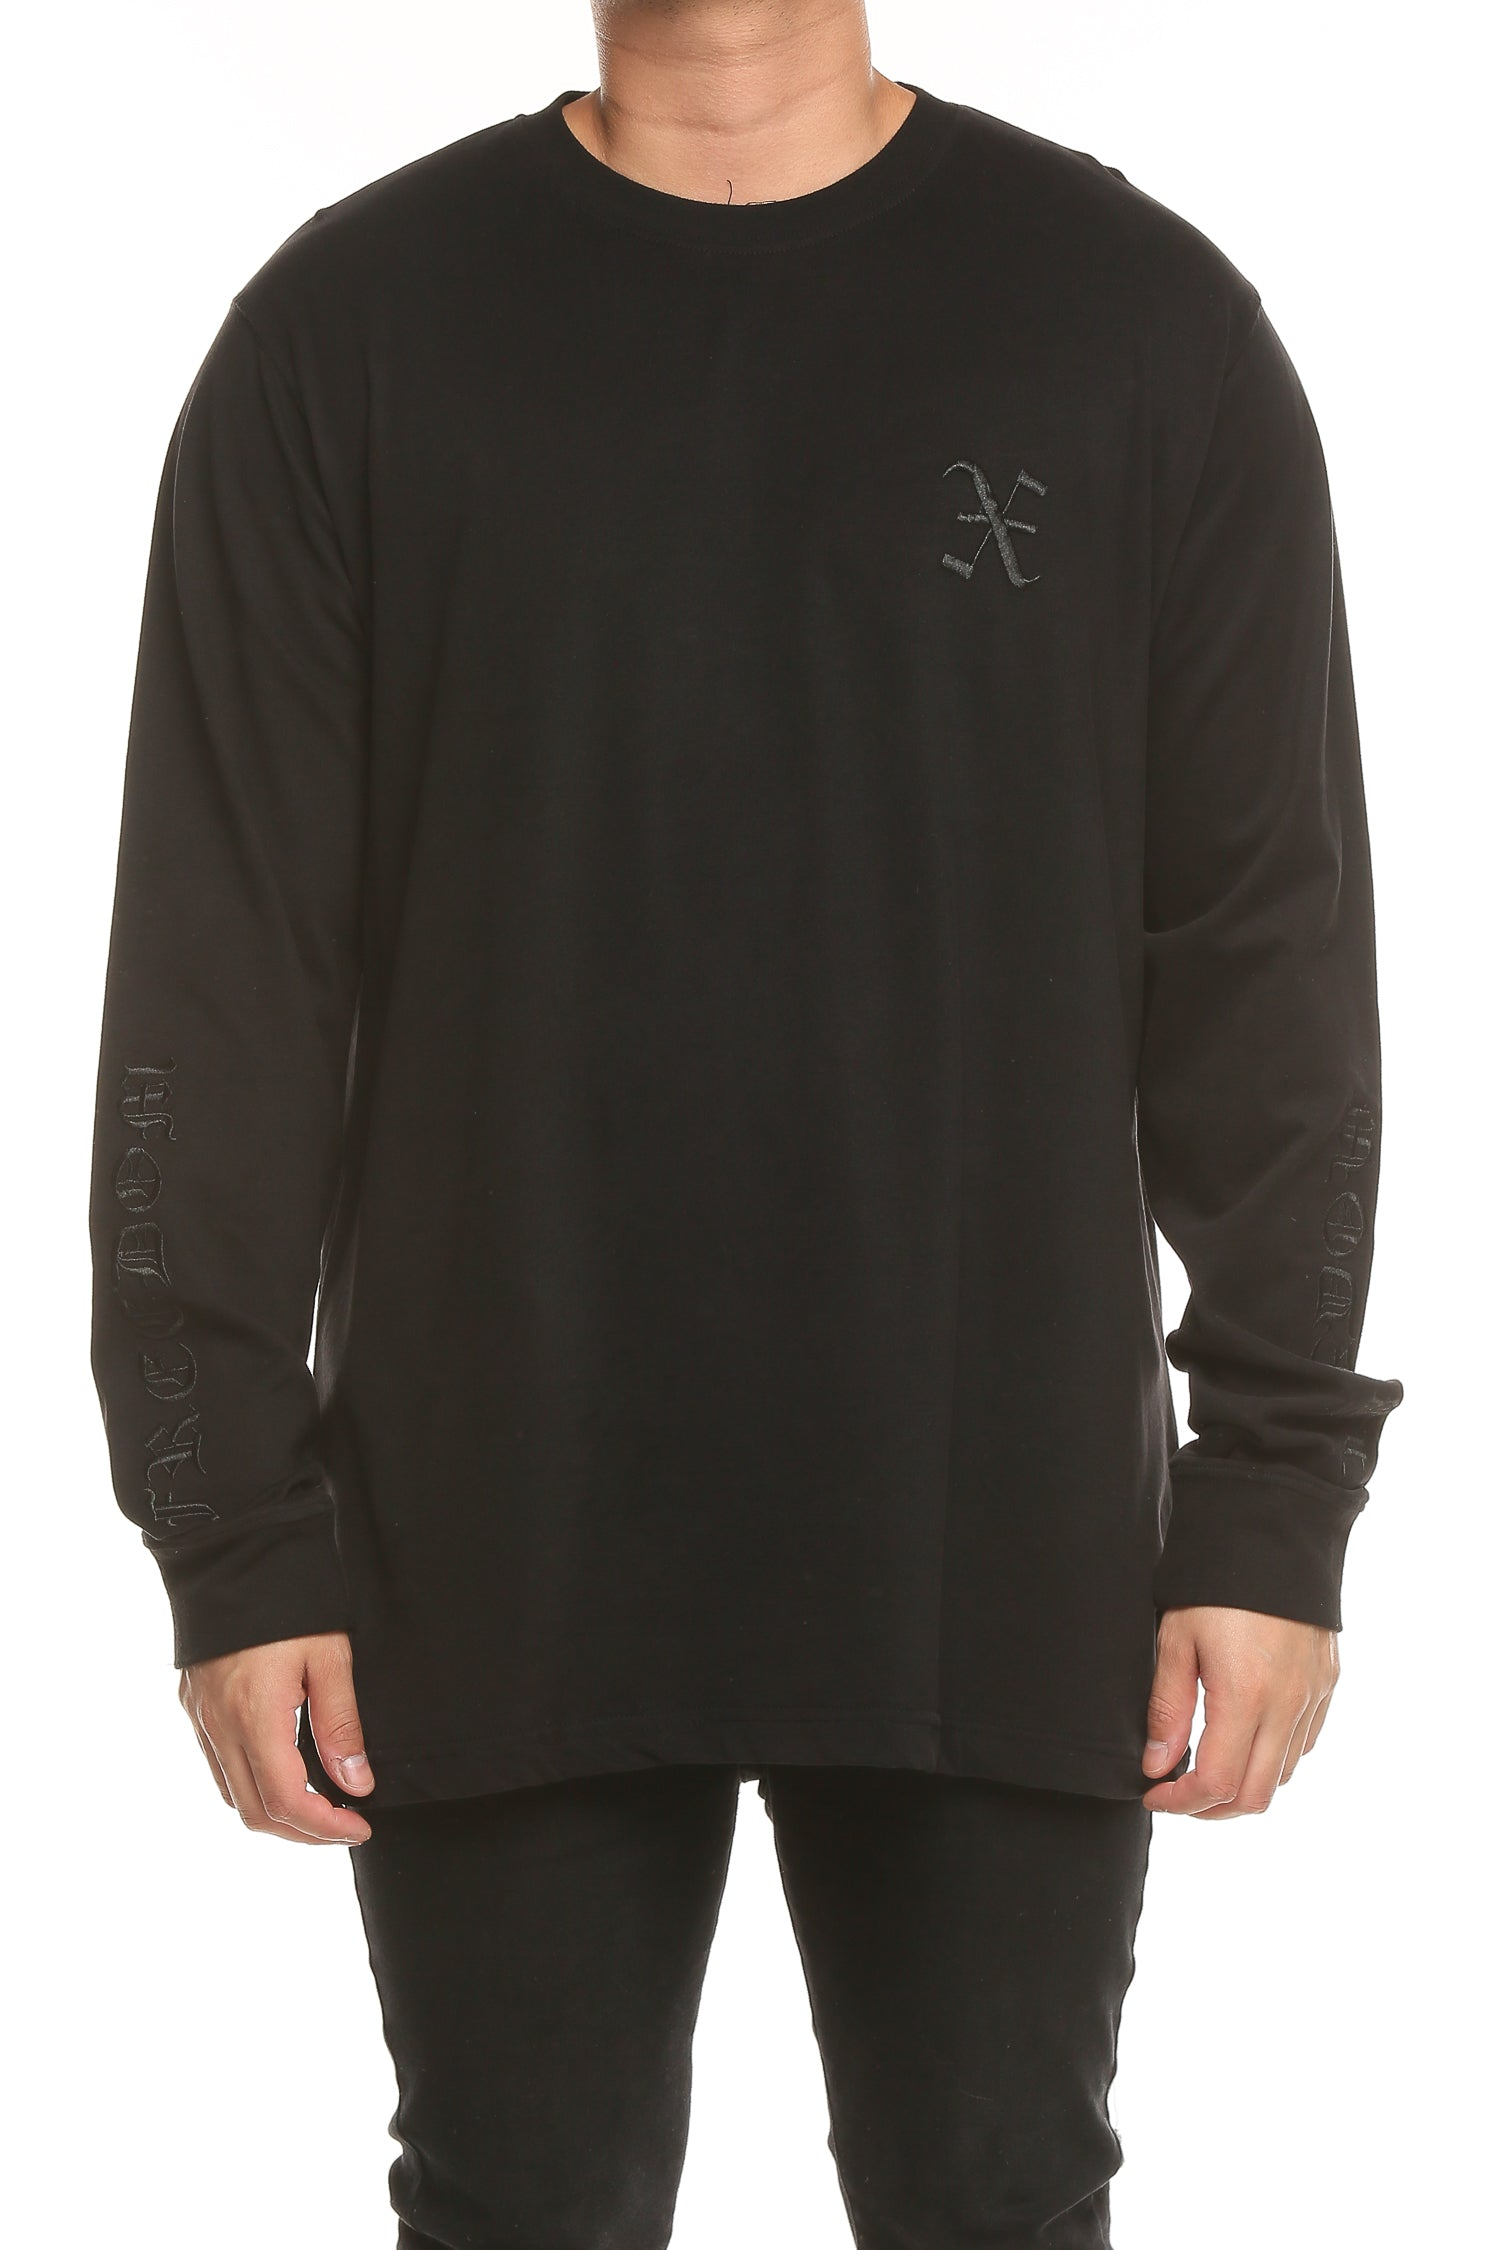 FREEDOM LS TEE - Black